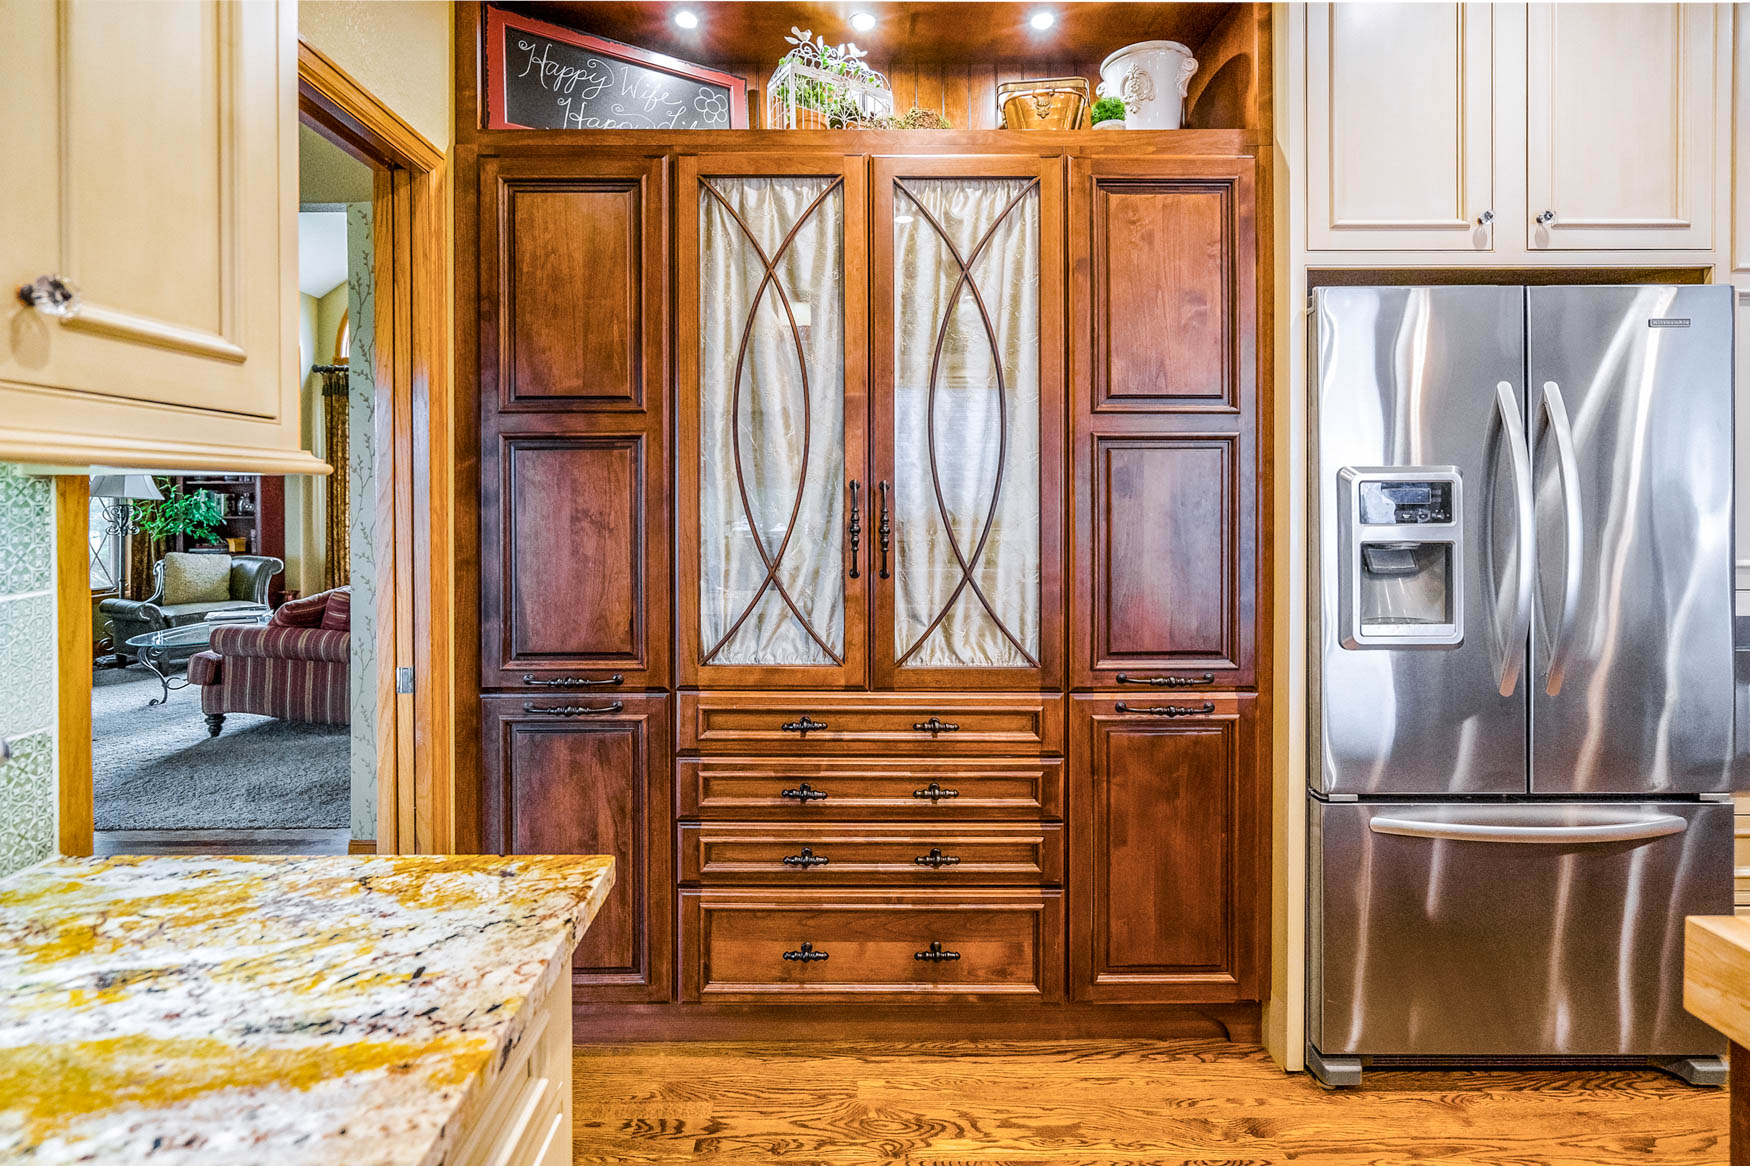 Haven-Interiors-Southern-Belle-KitchenM.jpg